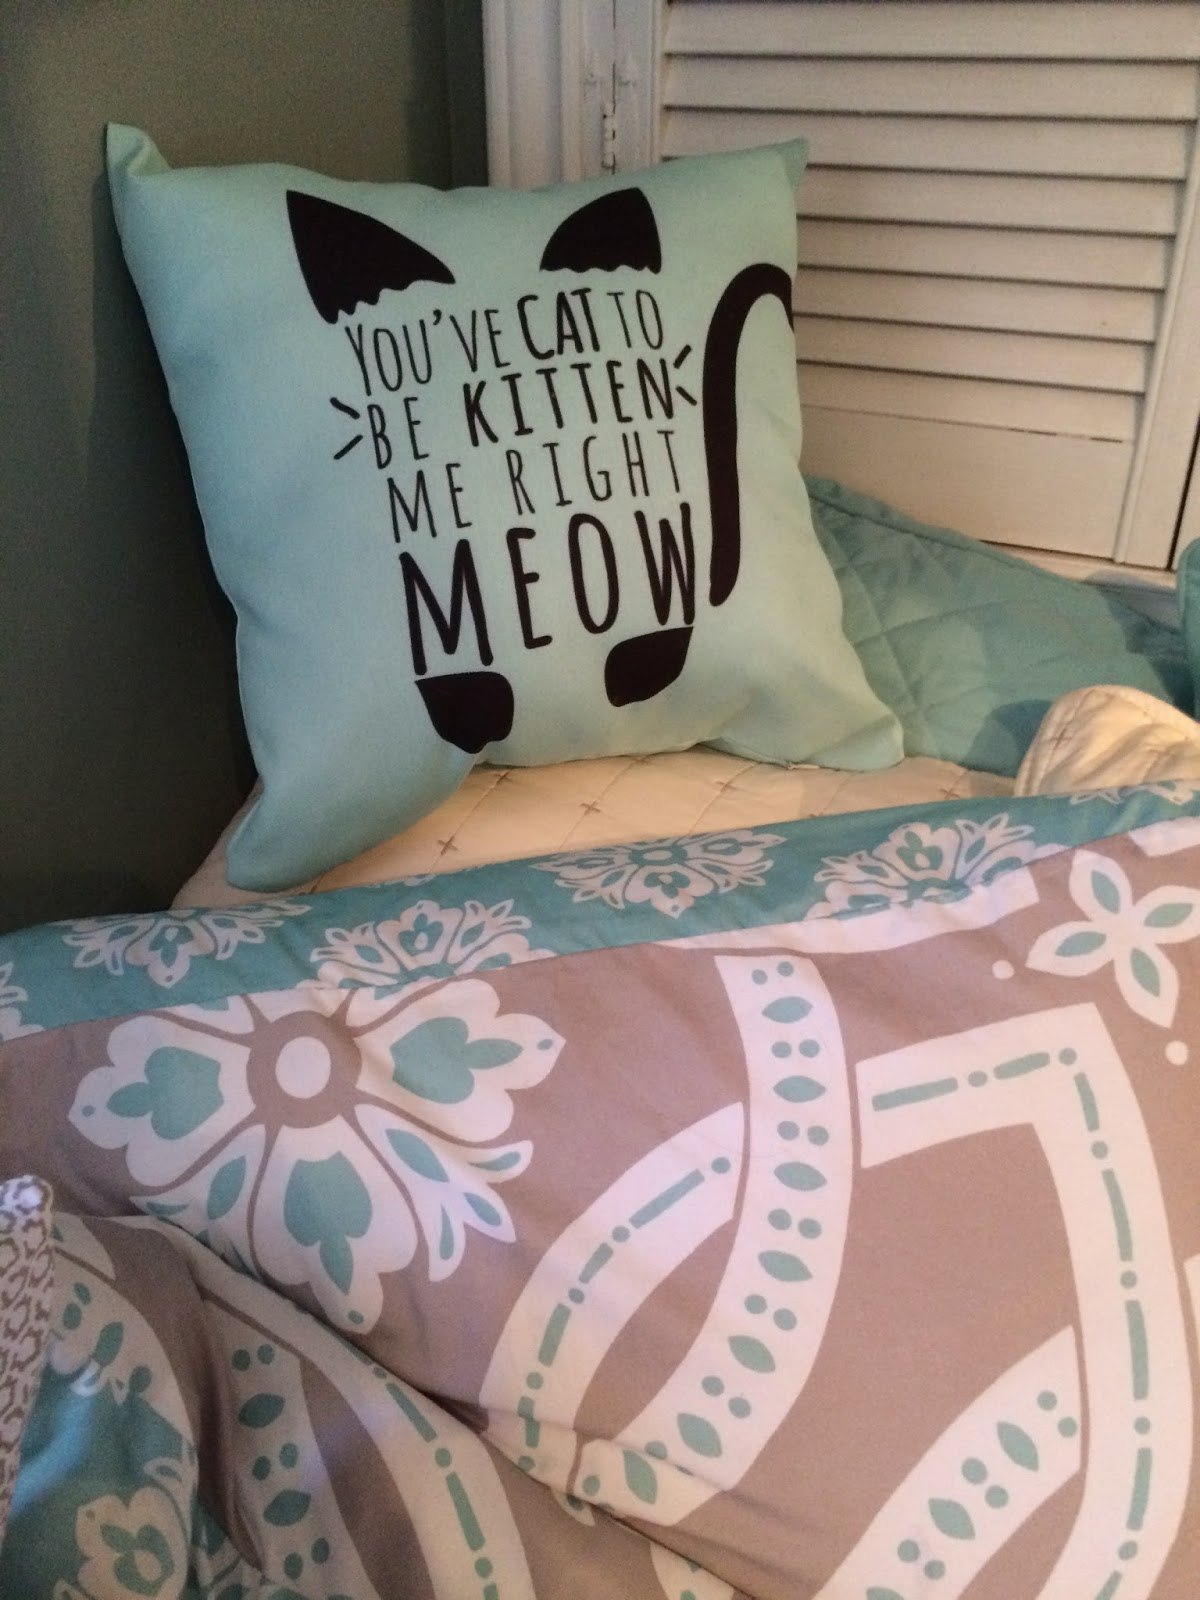 cat to be kitten me right meow pillow